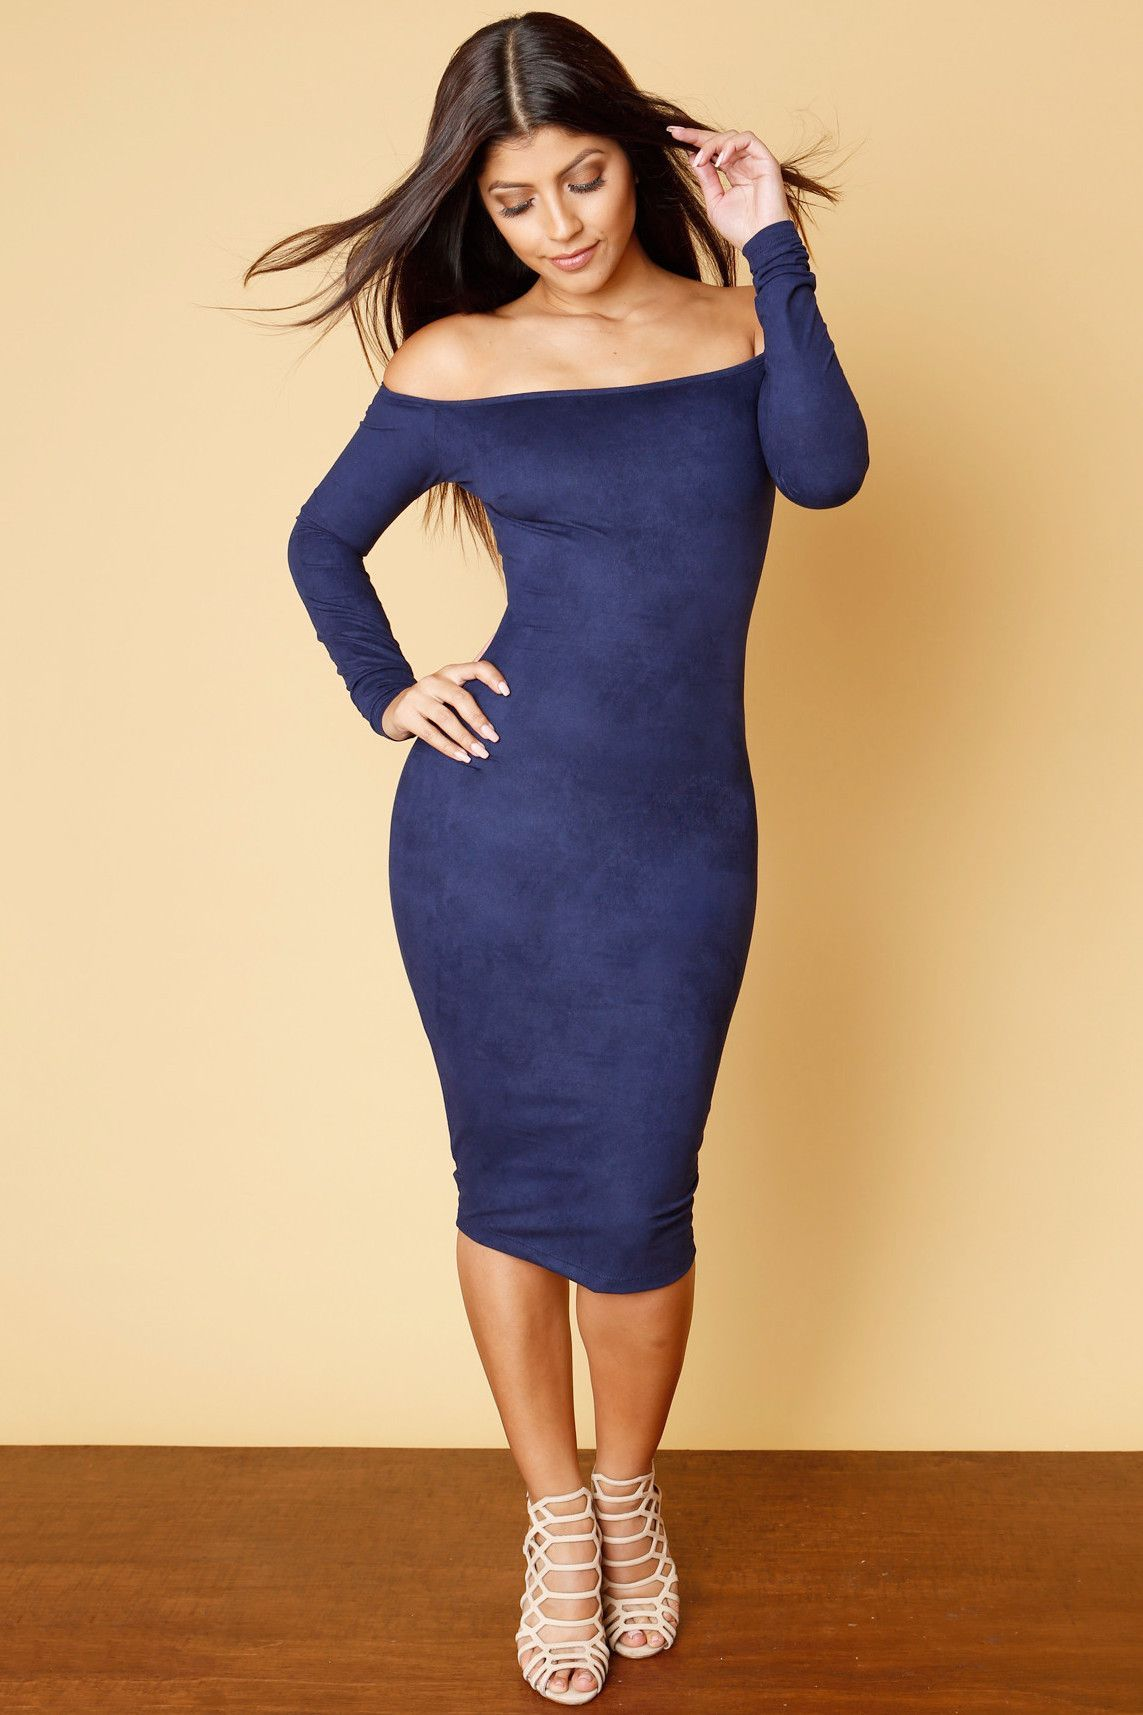 Lace dress styles for funeral  Everything I Said Suede Navy Dress  my swag  Pinterest  Navy